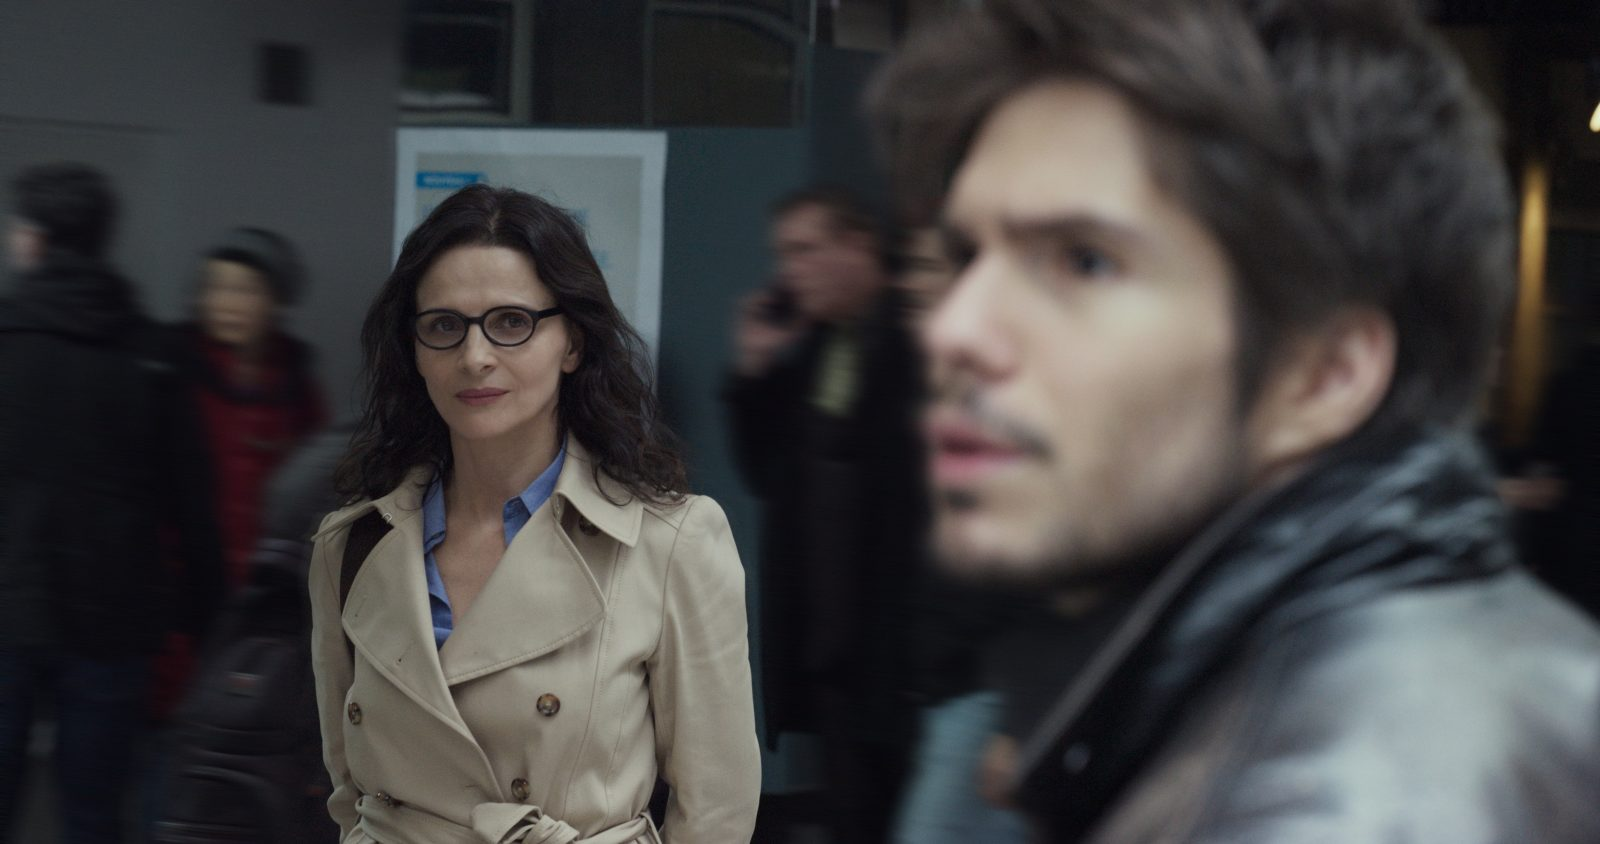 Juliette Binoche and François Civil in Celle que vous croyez (2019)